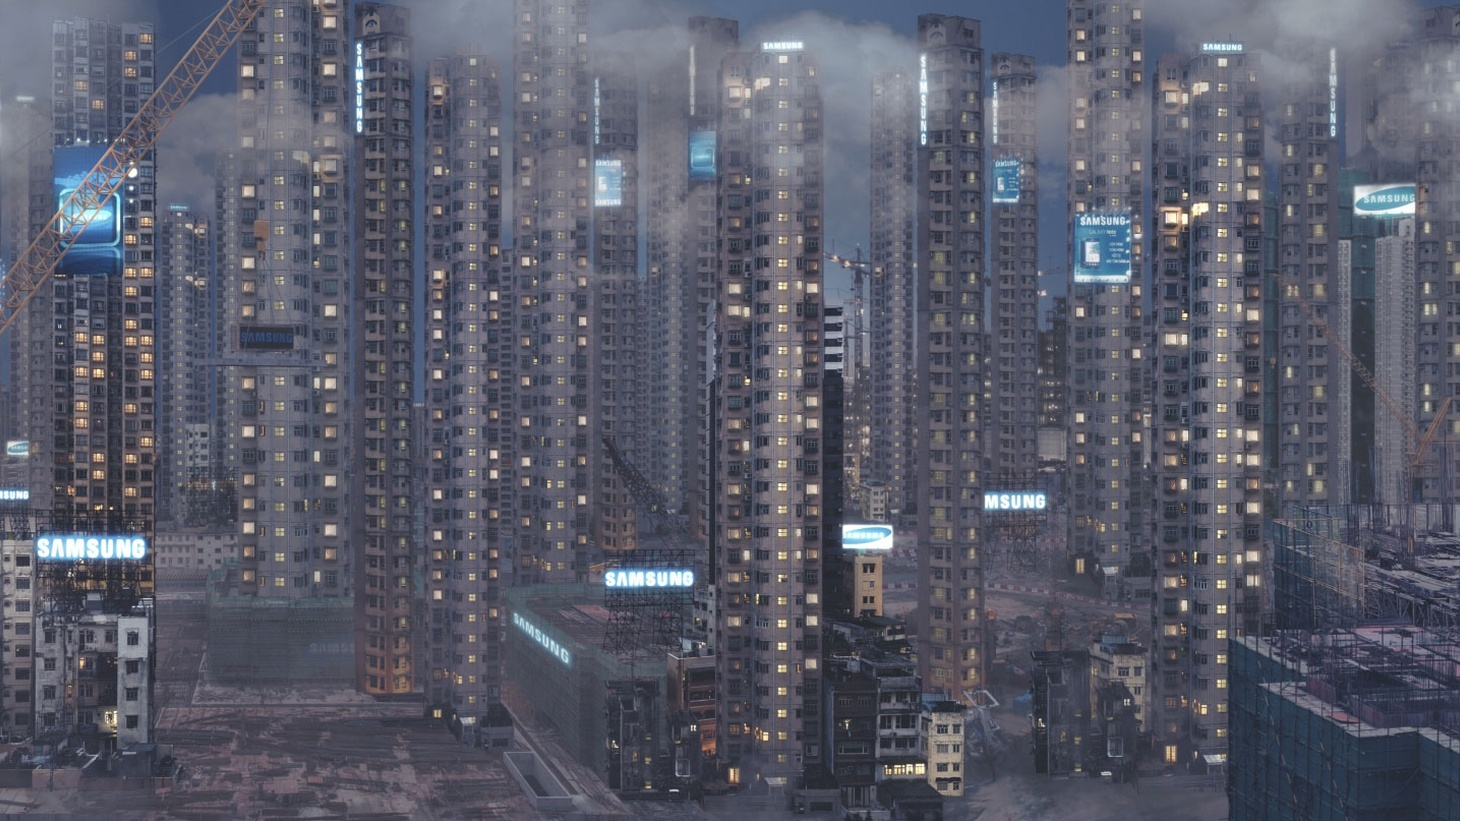 Could the pandemic alter this vision of tomorrow? Futurist Liam Young created this skyline of the near future in 2014, but now says COVID-19 may change how we imagine city life tomorrow.